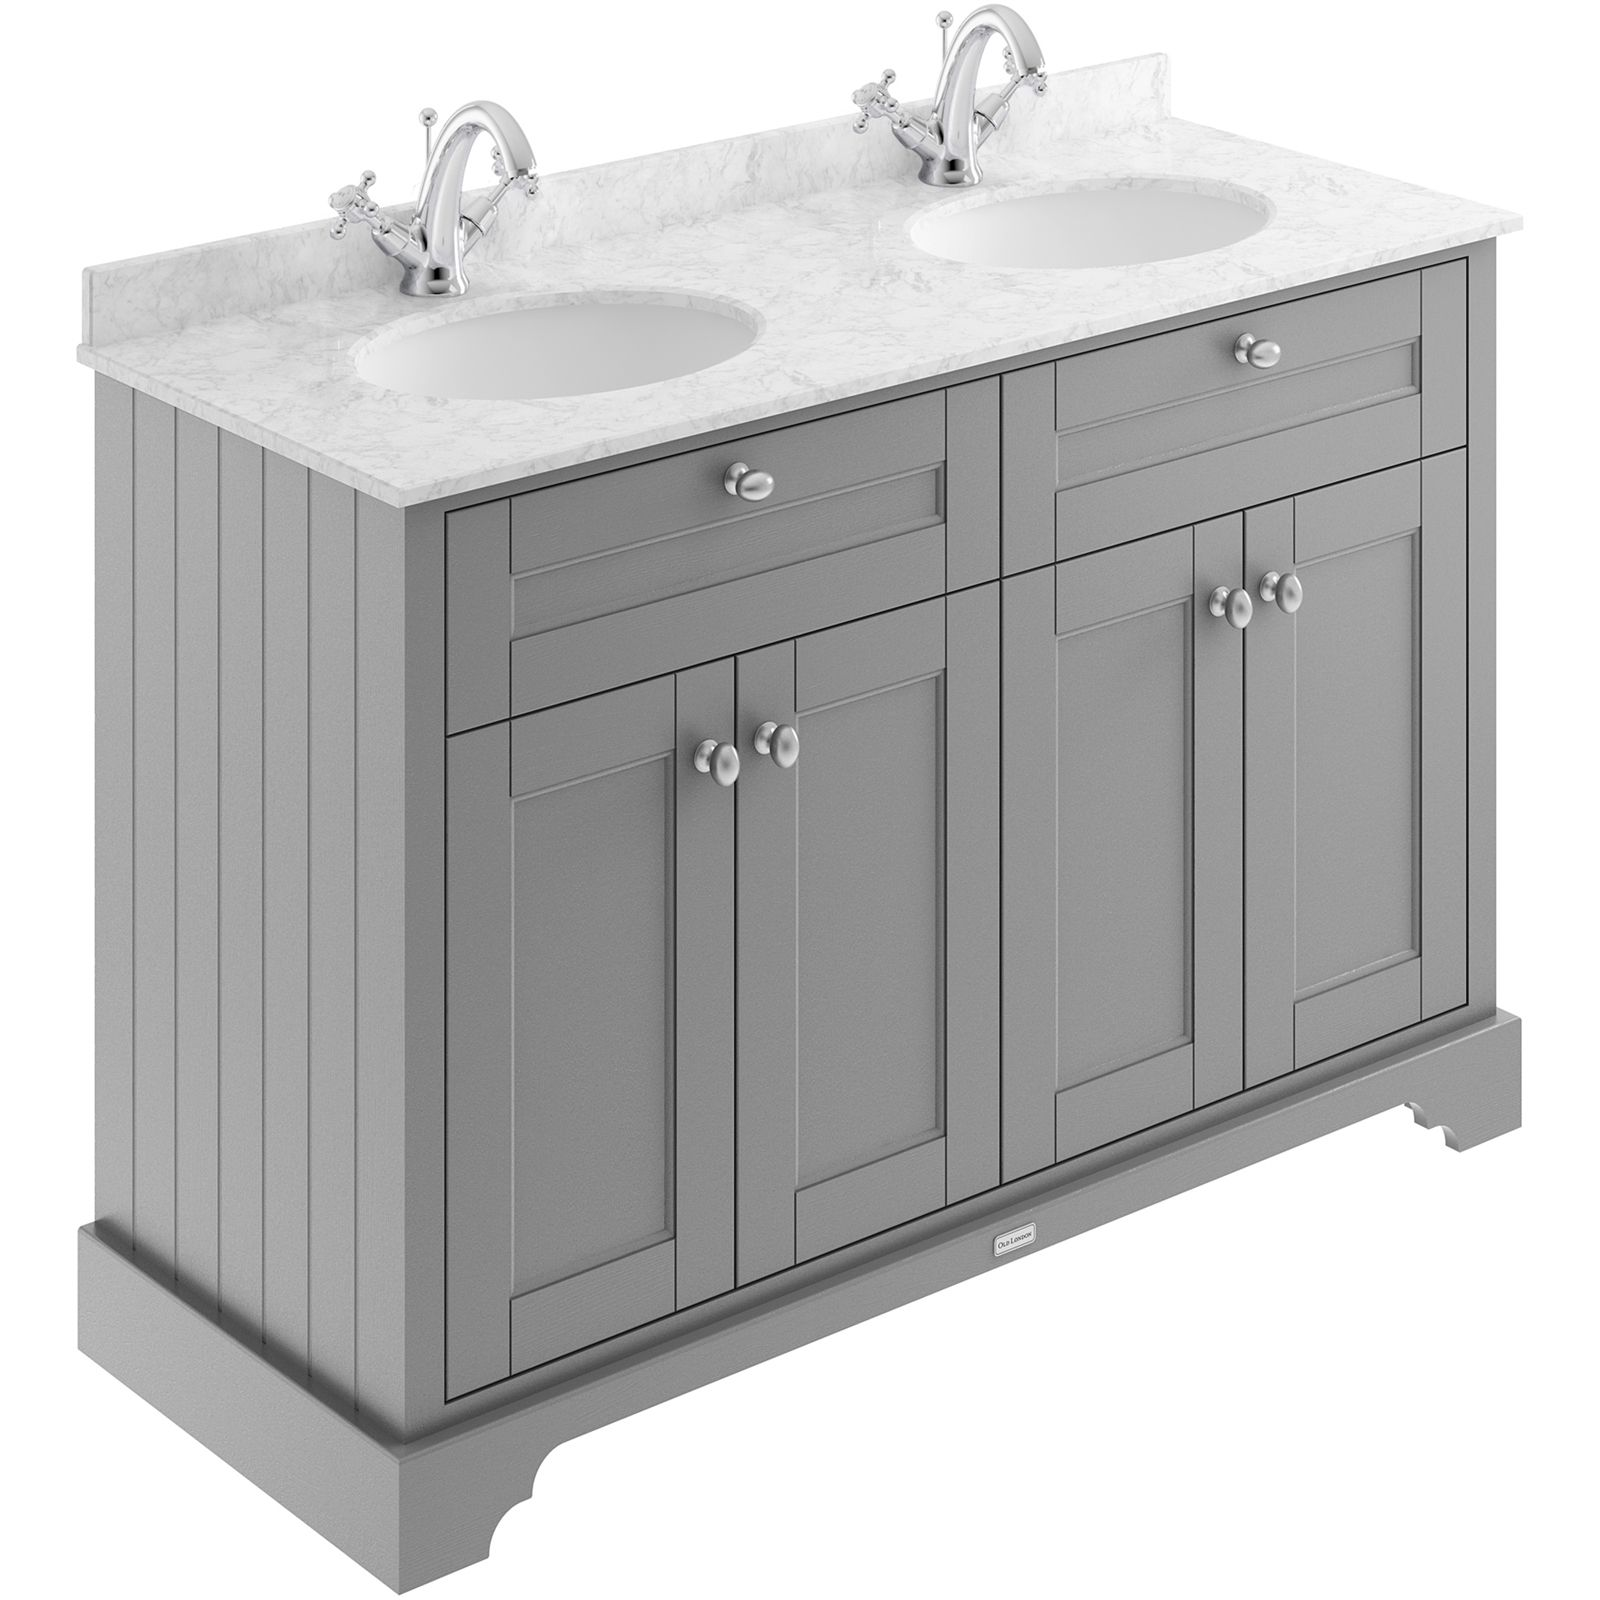 Balterley Harrington 1200mm Cabinet With 1 Tap Hole Grey Double Marble Top Grey At Homebase Vanity Units Traditional Bathroom Furniture Traditional Bathroom